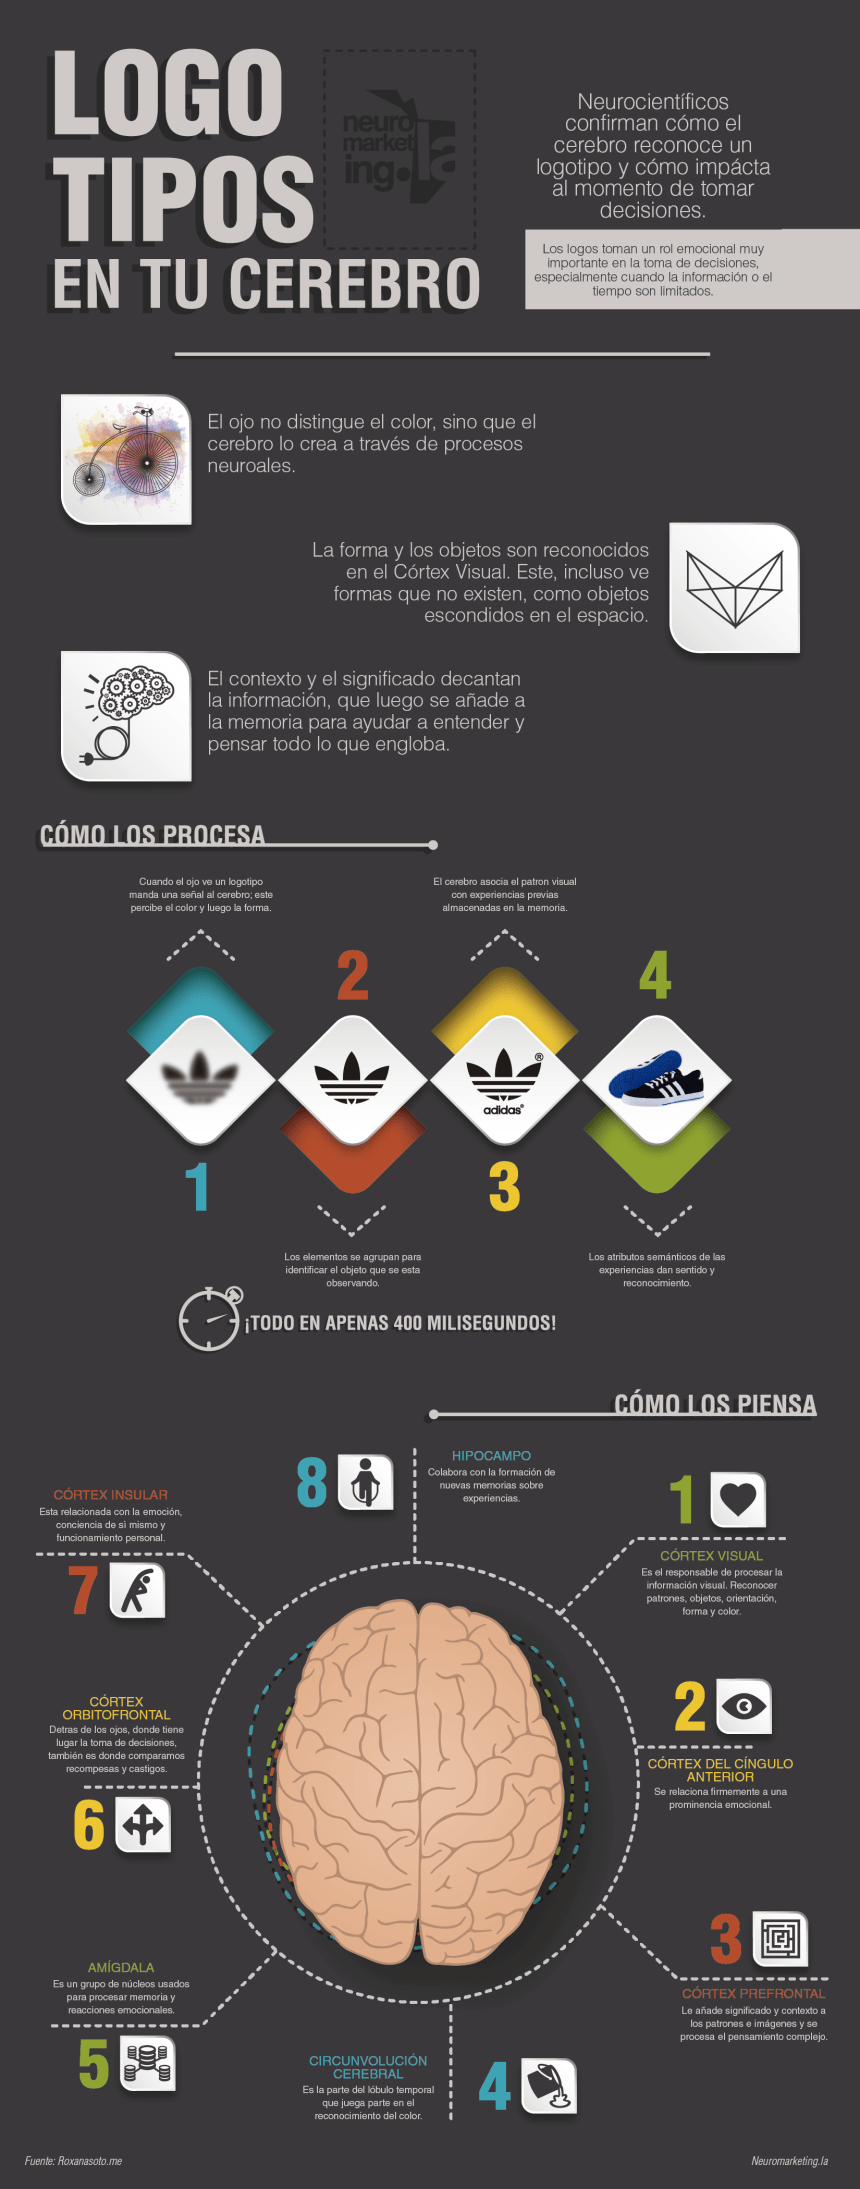 logos-neuromarketing-infografia